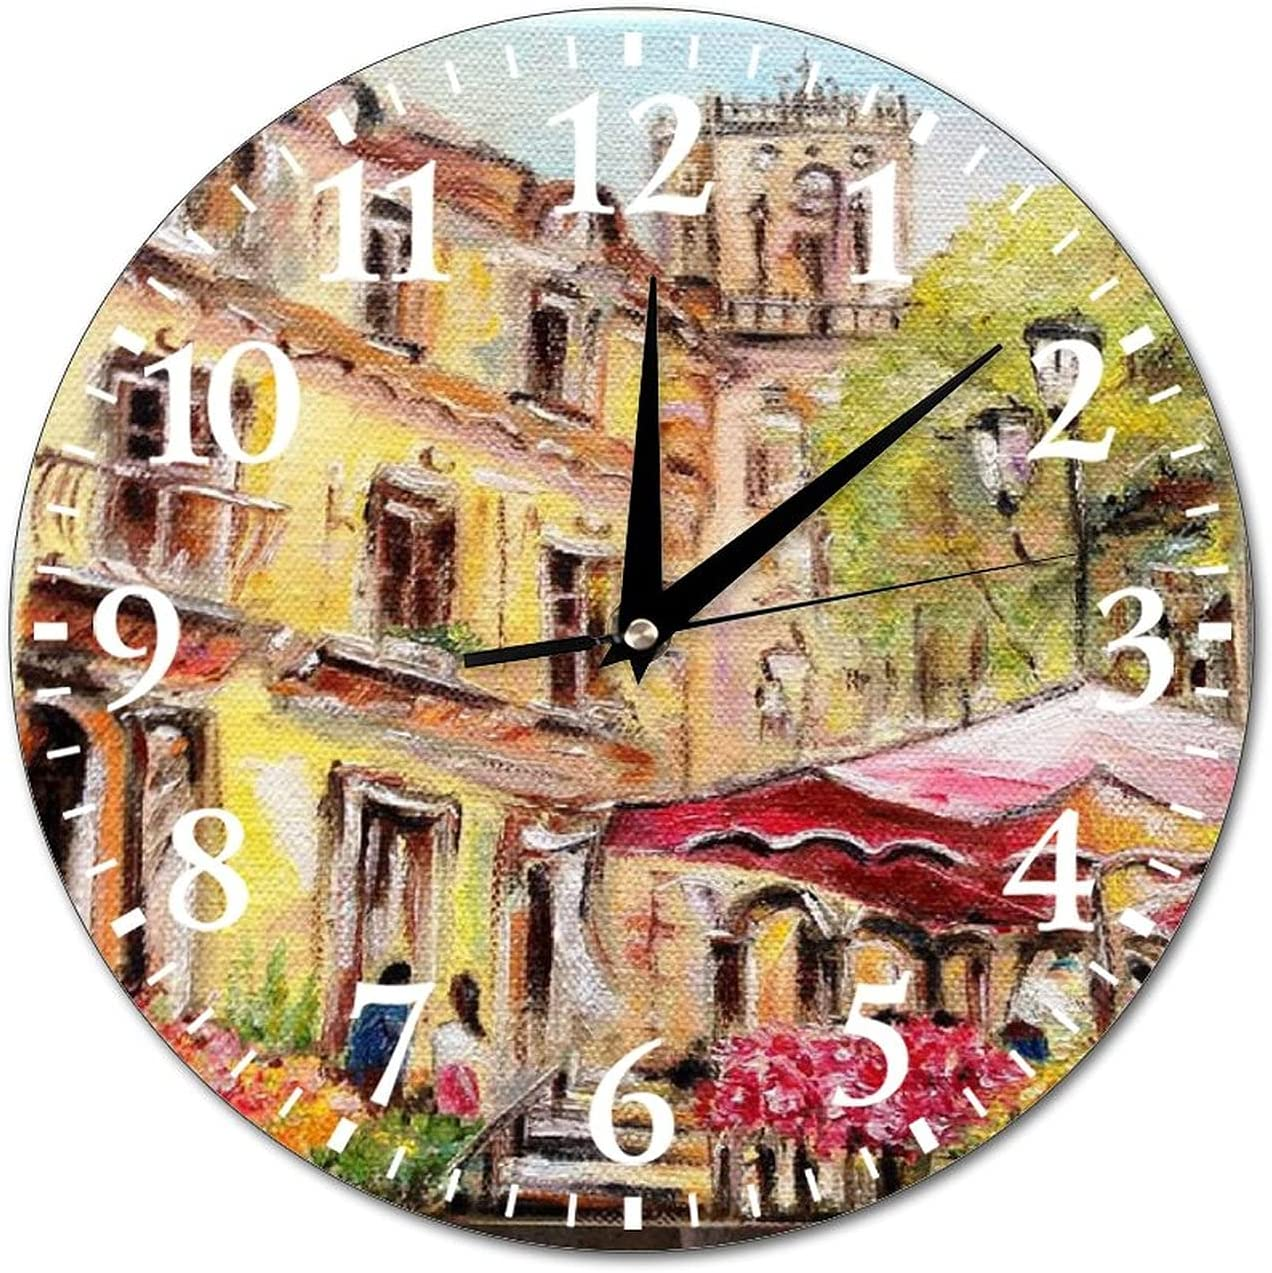 VinMea Wall Clock Oil Painting Marche Aux Fleurs Hanging Clock Silent Non Ticking Decorative Home Clock for Living Room Bedrooms,12 Inch